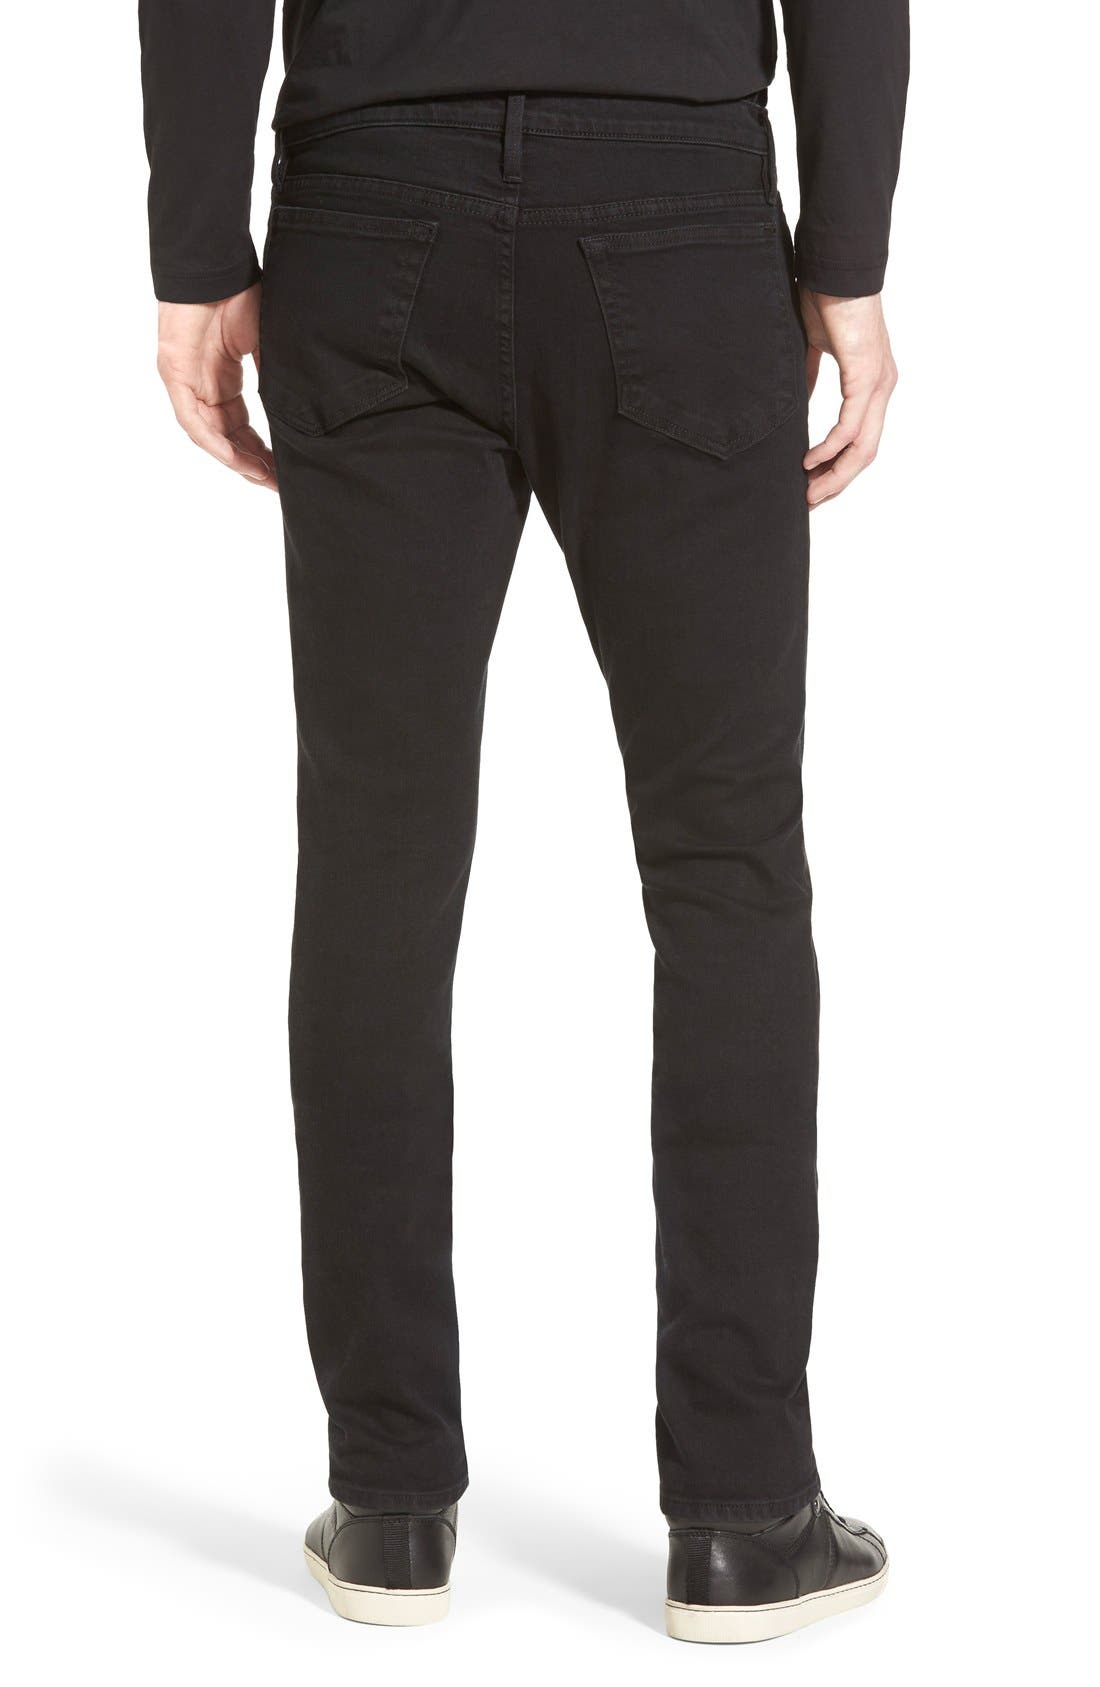 L'Homme Skinny Fit Jeans,                             Alternate thumbnail 9, color,                             NOIR